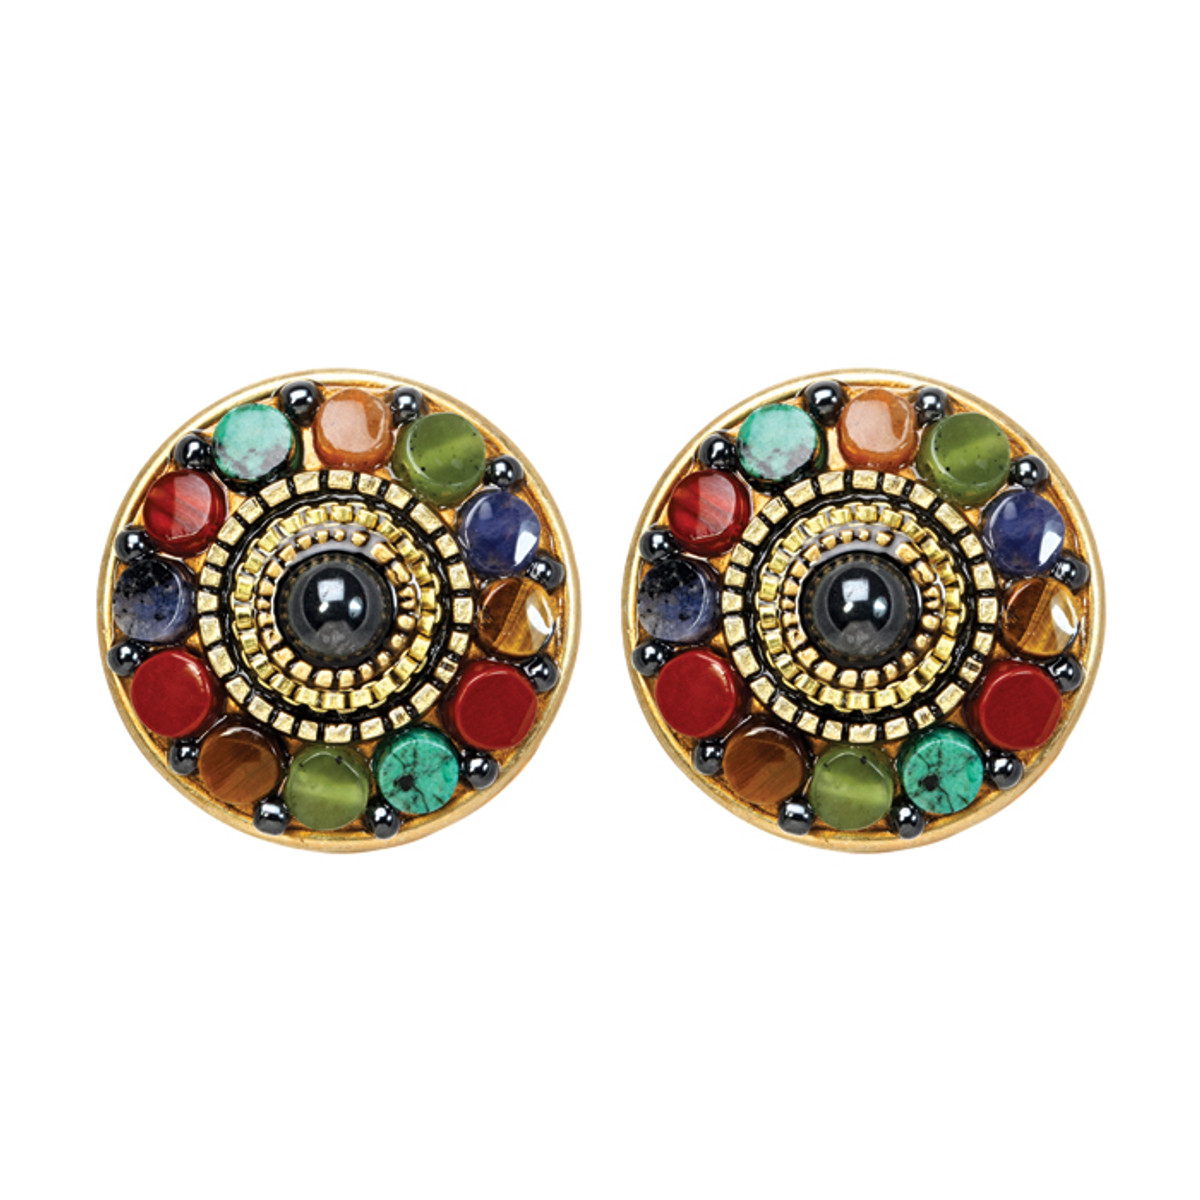 Michal Golan Earrings - Durango Round Post/Clip